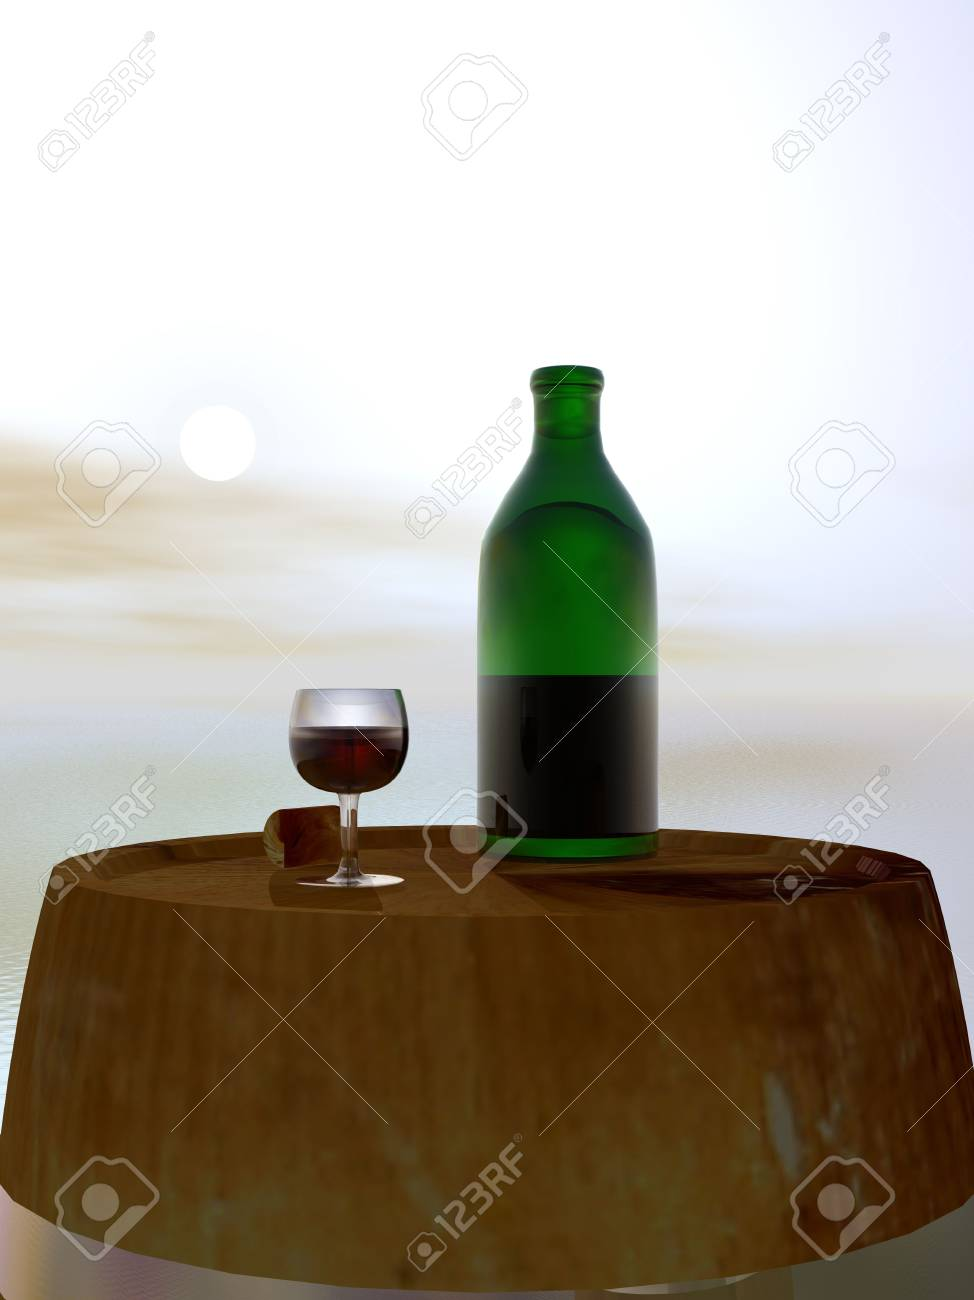 Green Bottle and Glass of Wine on Barrel Keg Stock Photo - 3846710